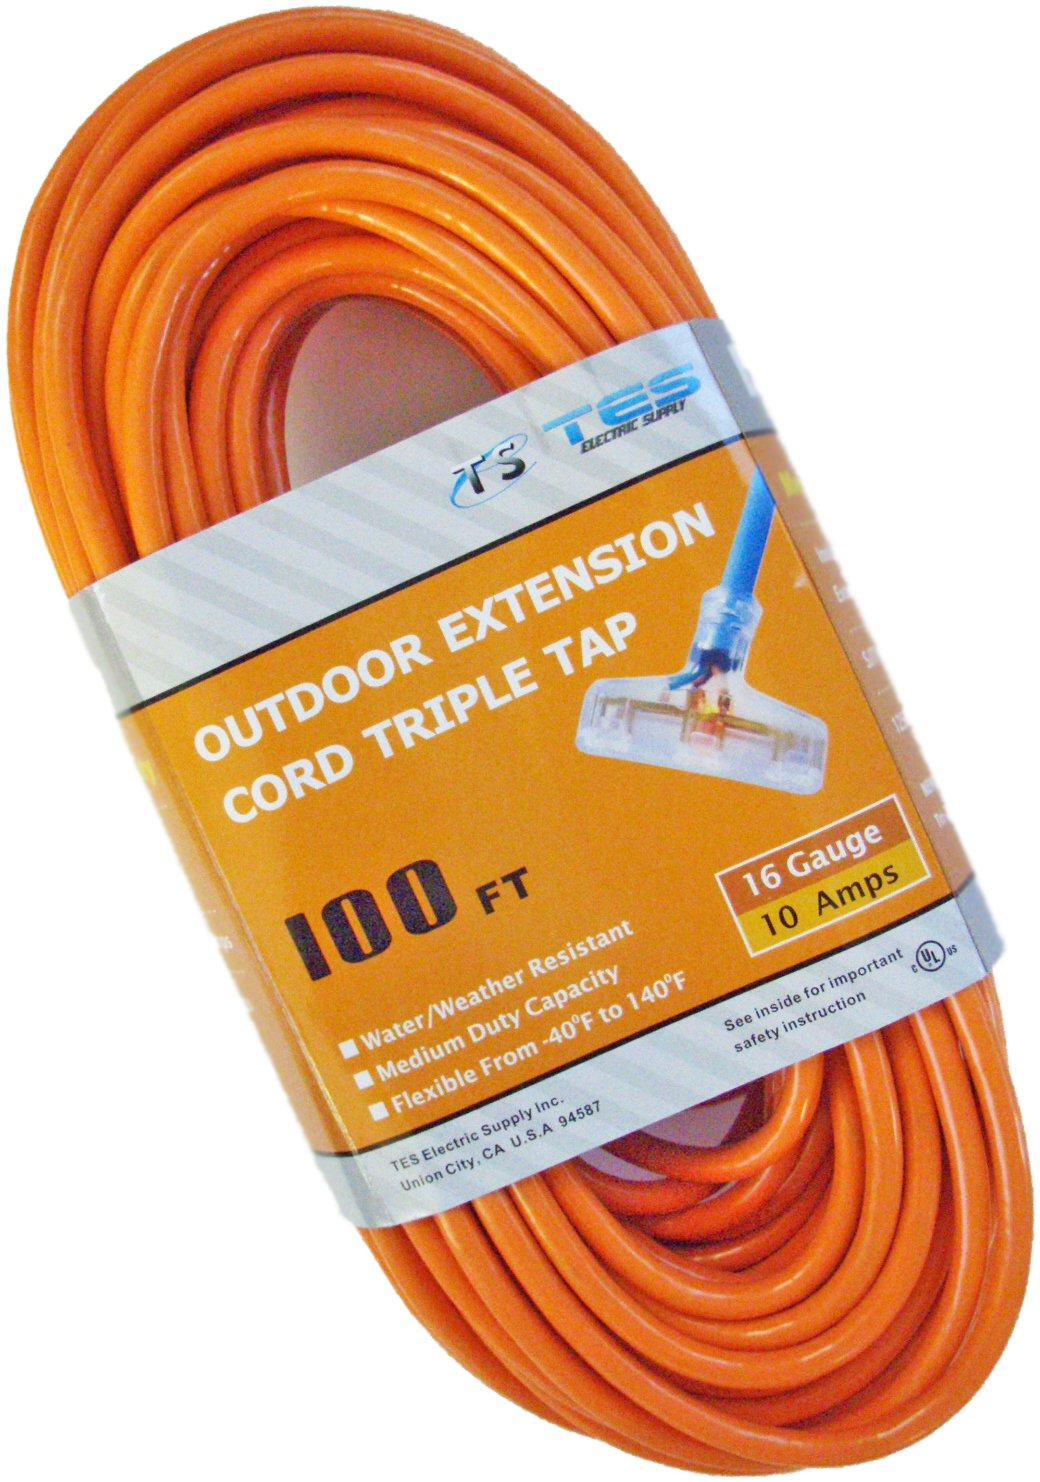 TES 16 Gauge 100 Ft. 16/3 Triple Tap SJTW Medium Duty Extension Cord with Lighted Plug by TES Electric Supply